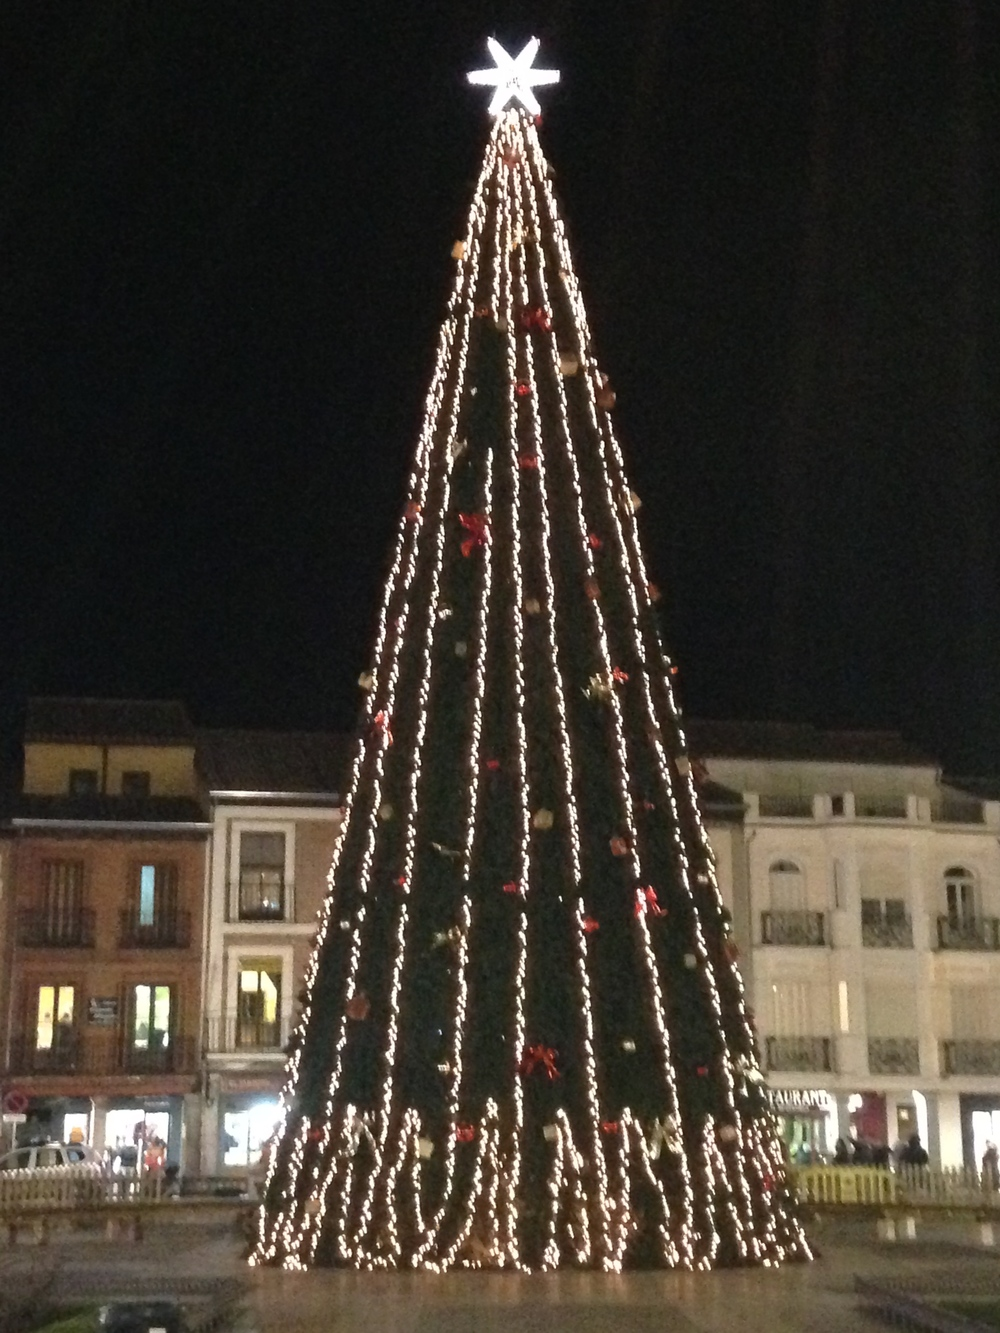 The Christmas tree in the central plaza.